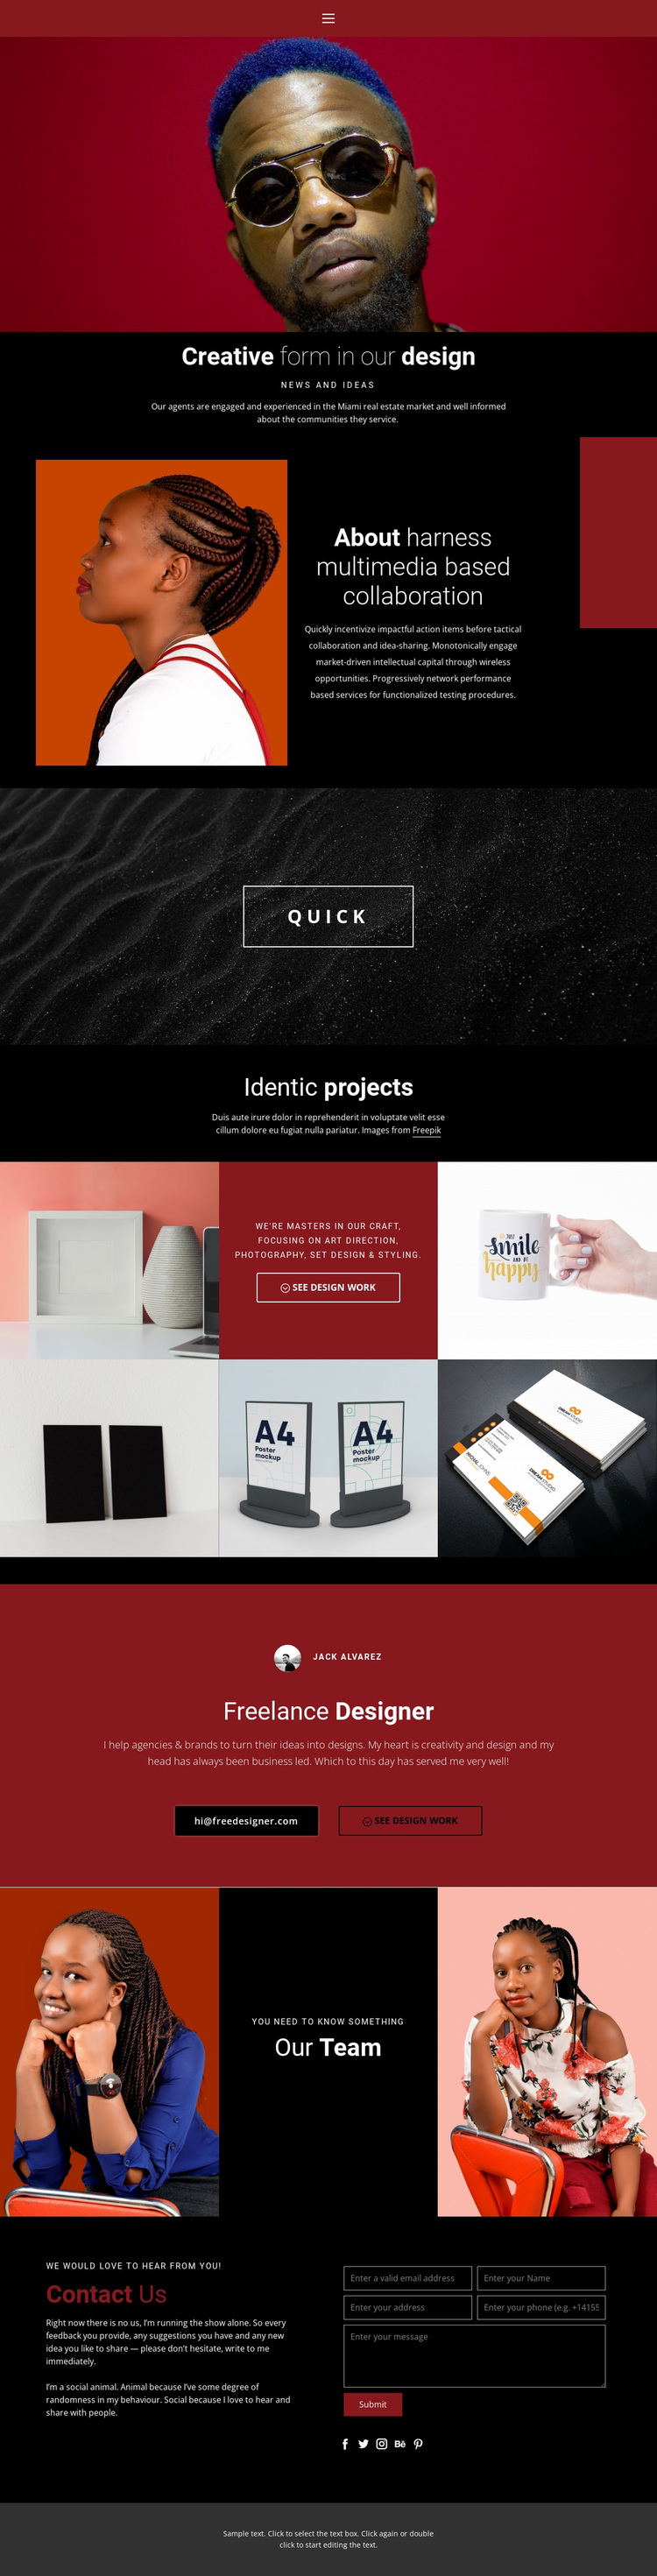 Creative form in design Website Design